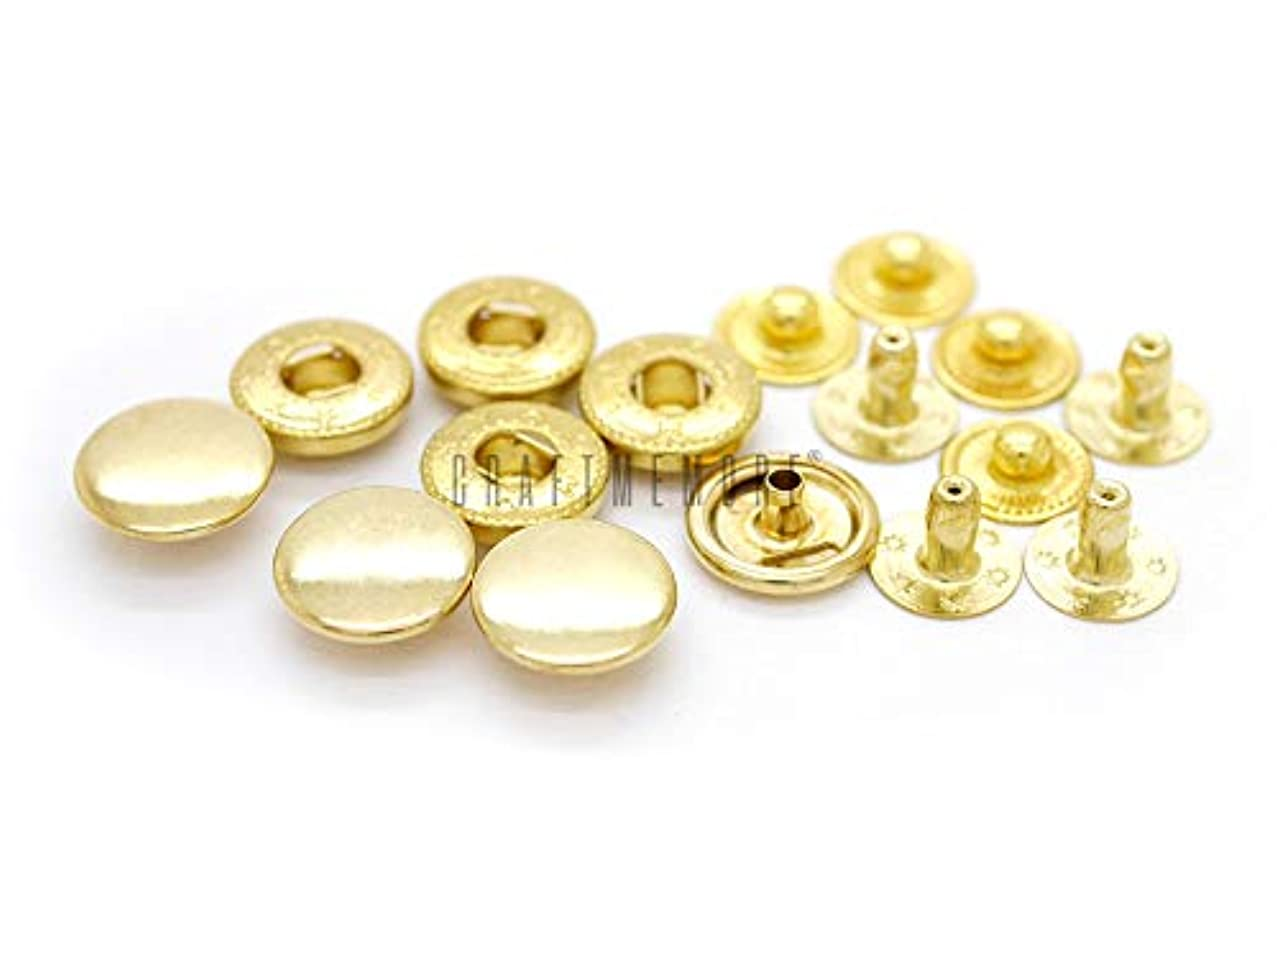 CRAFTMEmore 50 Pack Multi-Size Gold Plating Snap Buttons S-Spring Socket Popper Fasteners Jacket Bag Closures (10mm (0.39